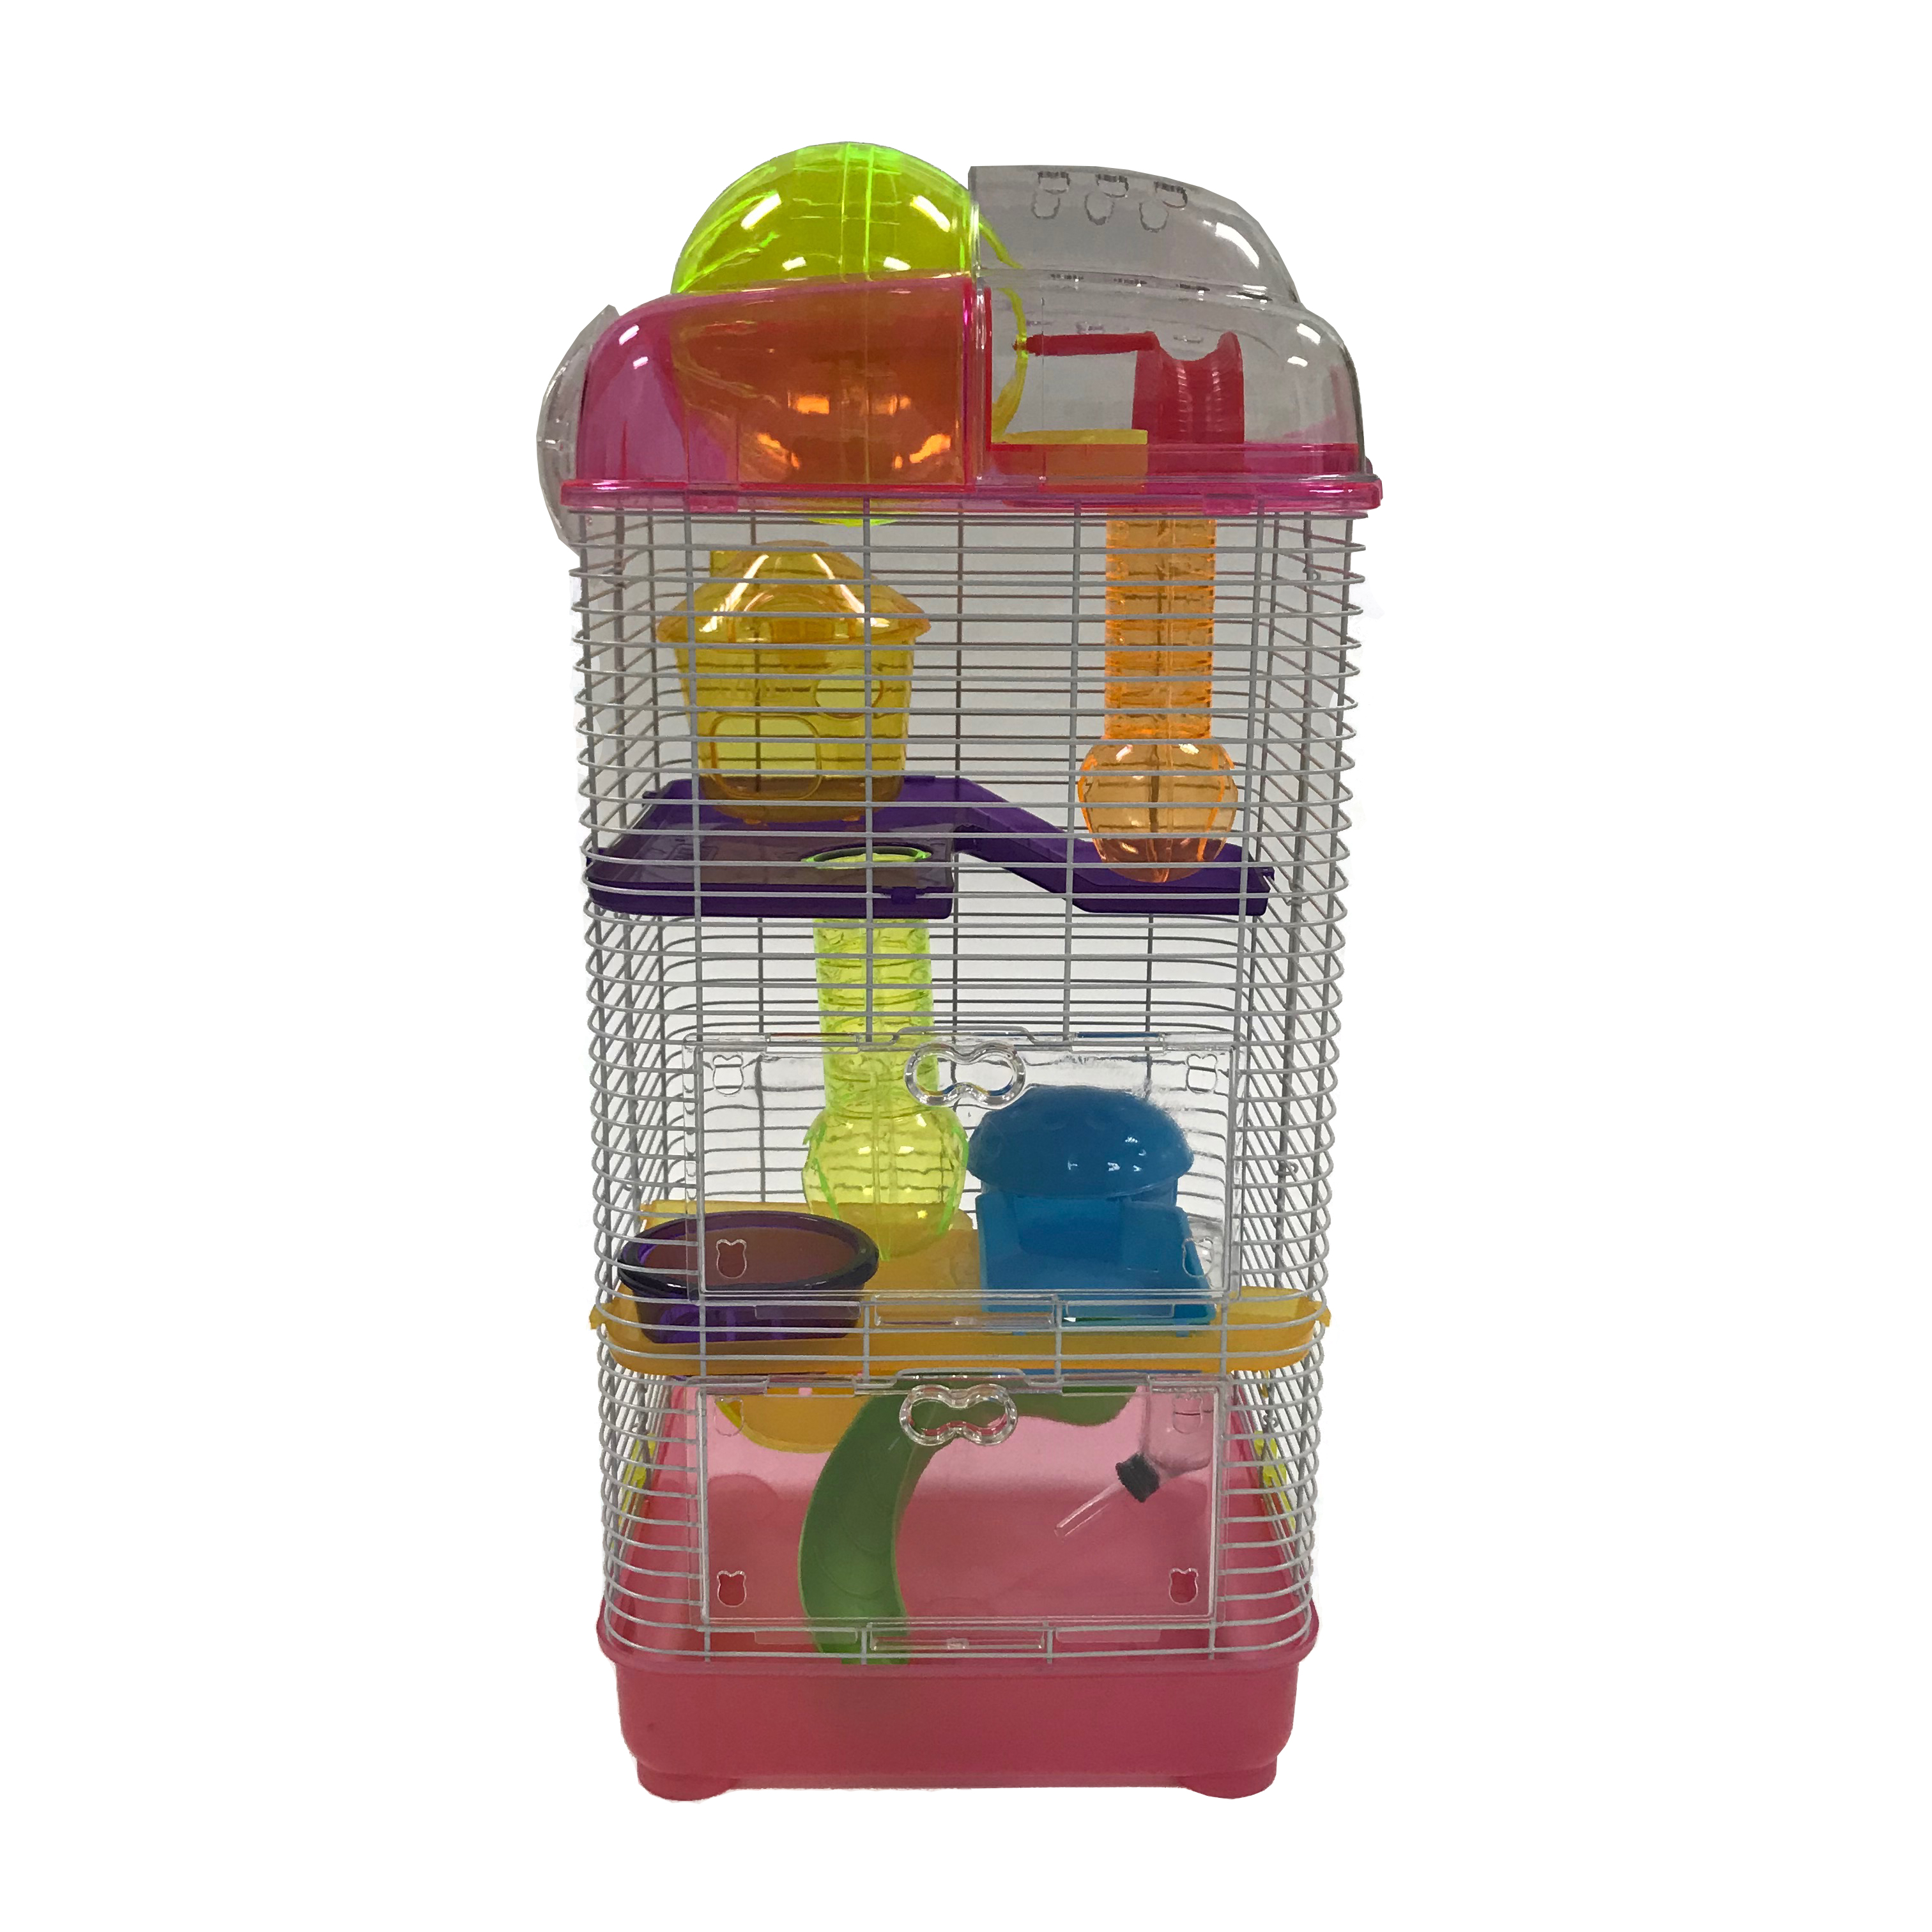 YML H3030PK 3-Level Clear Plastic Dwarf Hamster Mice Cage with Ball on Top, Pink by YML Group Inc.